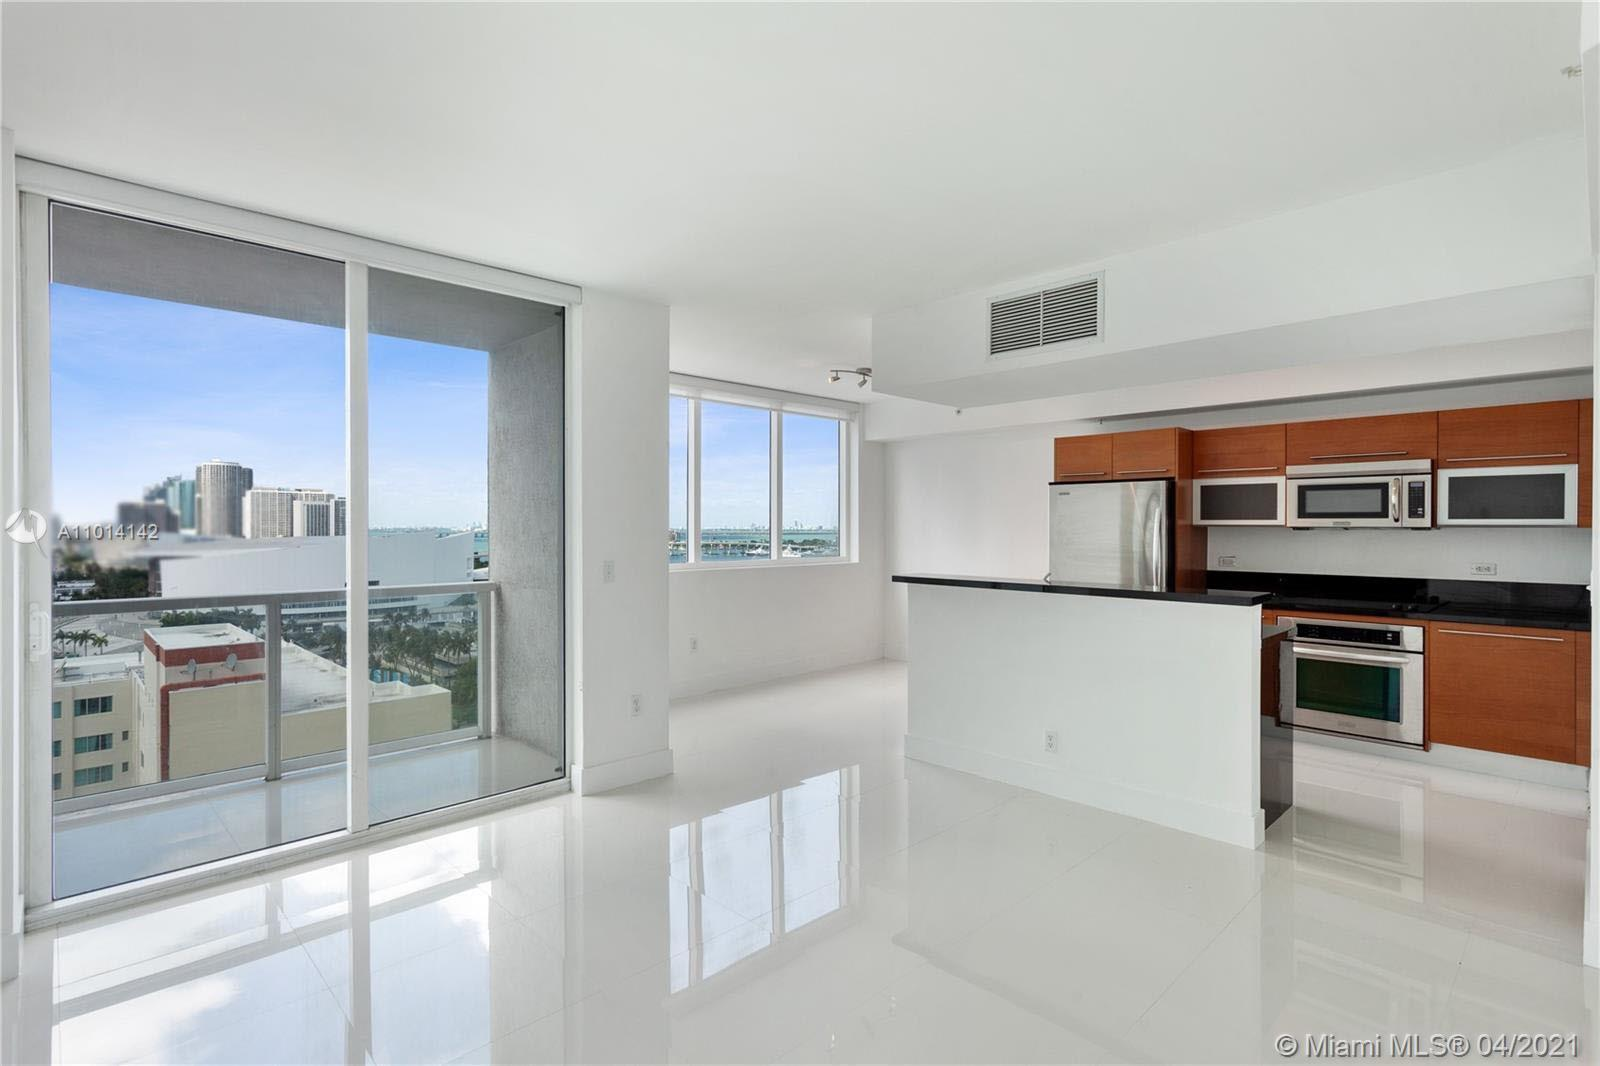 WOW SEE THAT VIEW!!  from this 1 bedroom + enclosed den and 2 full baths. Great location in downtown